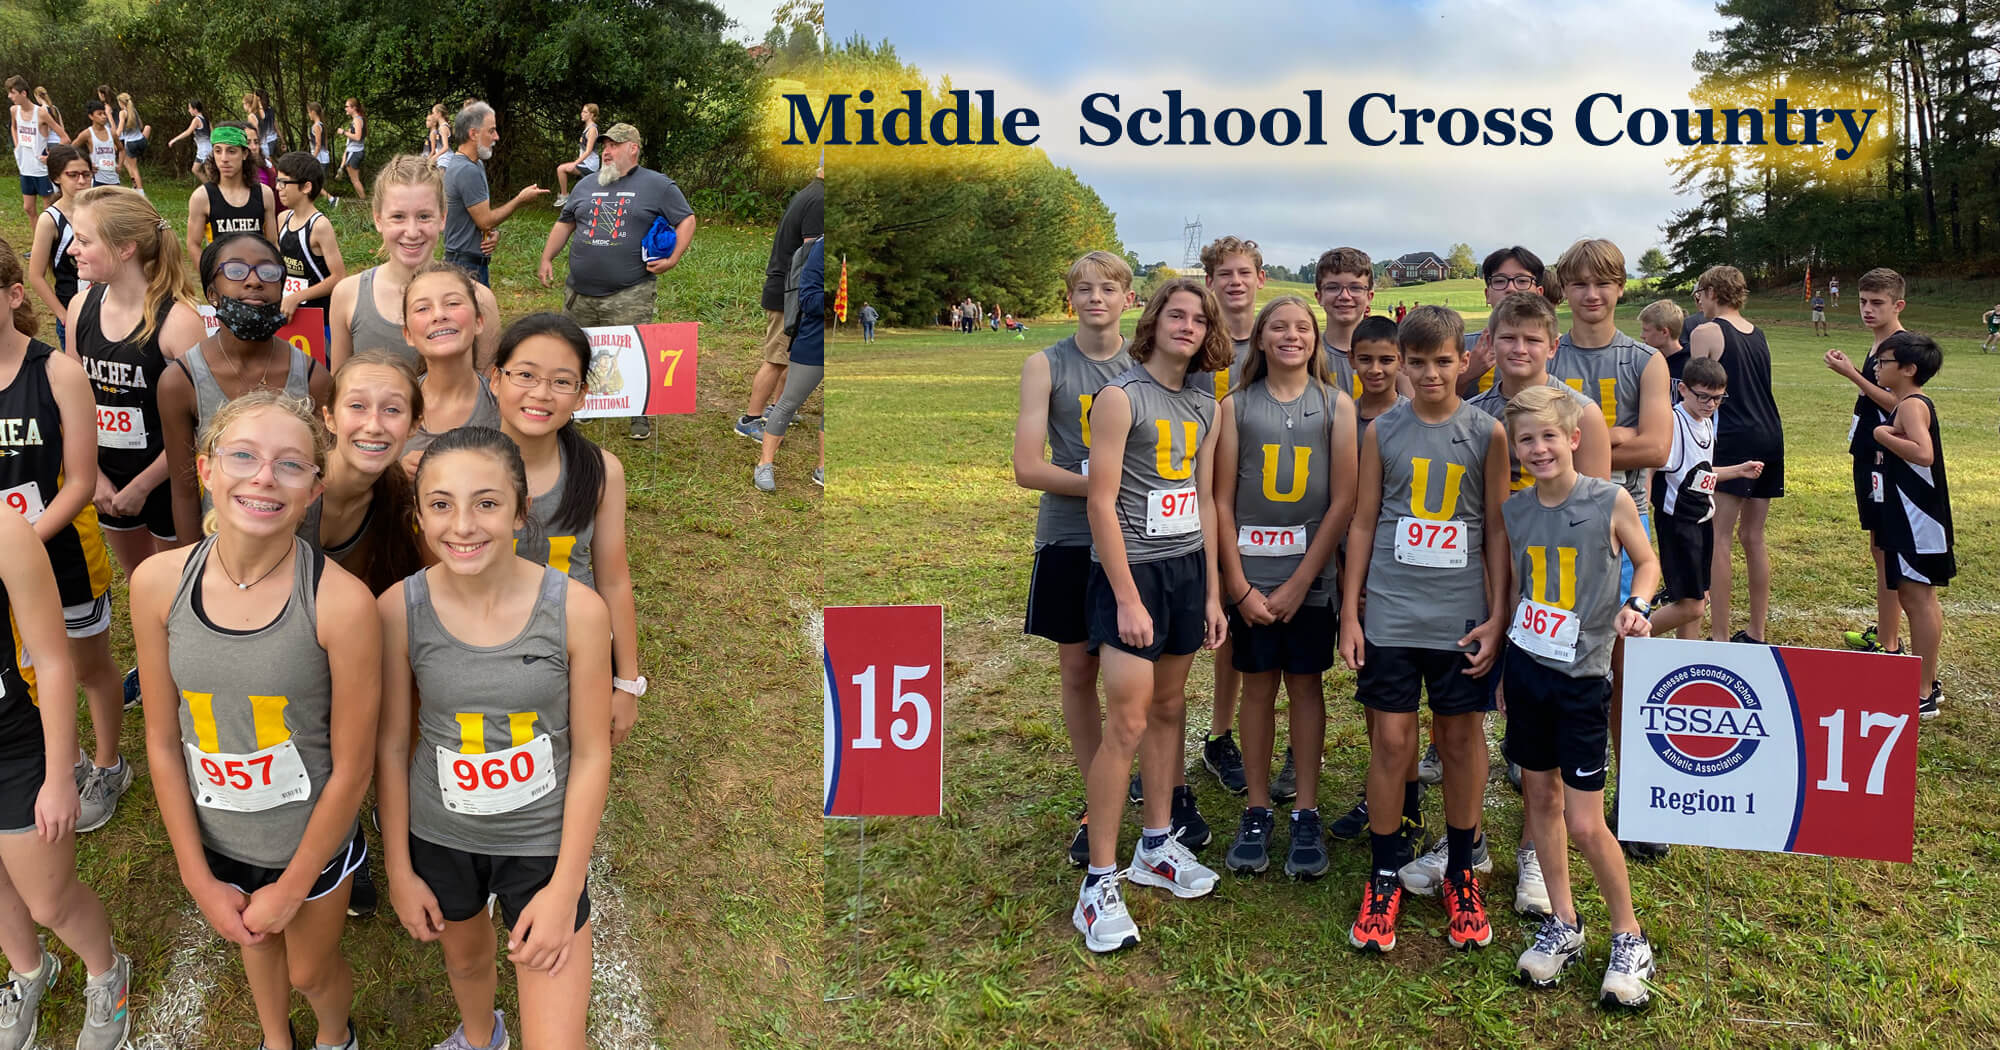 2021-2022 Middle School Cross Country